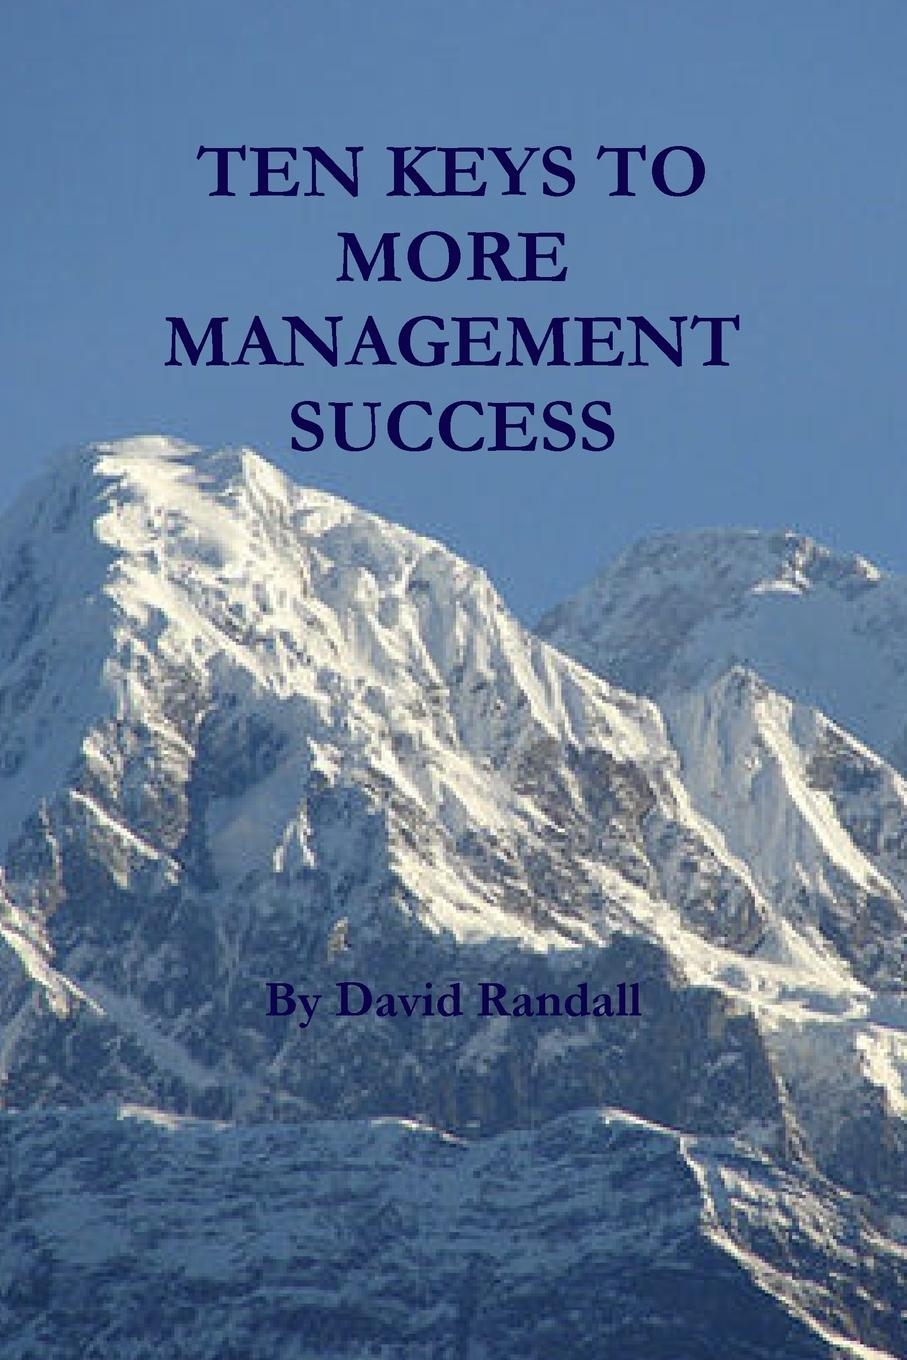 DAVID RANDALL TEN KEYS TO MORE MANAGEMENT SUCCESS saul miller l why teams win 9 keys to success in business sport and beyond isbn 9780470160725